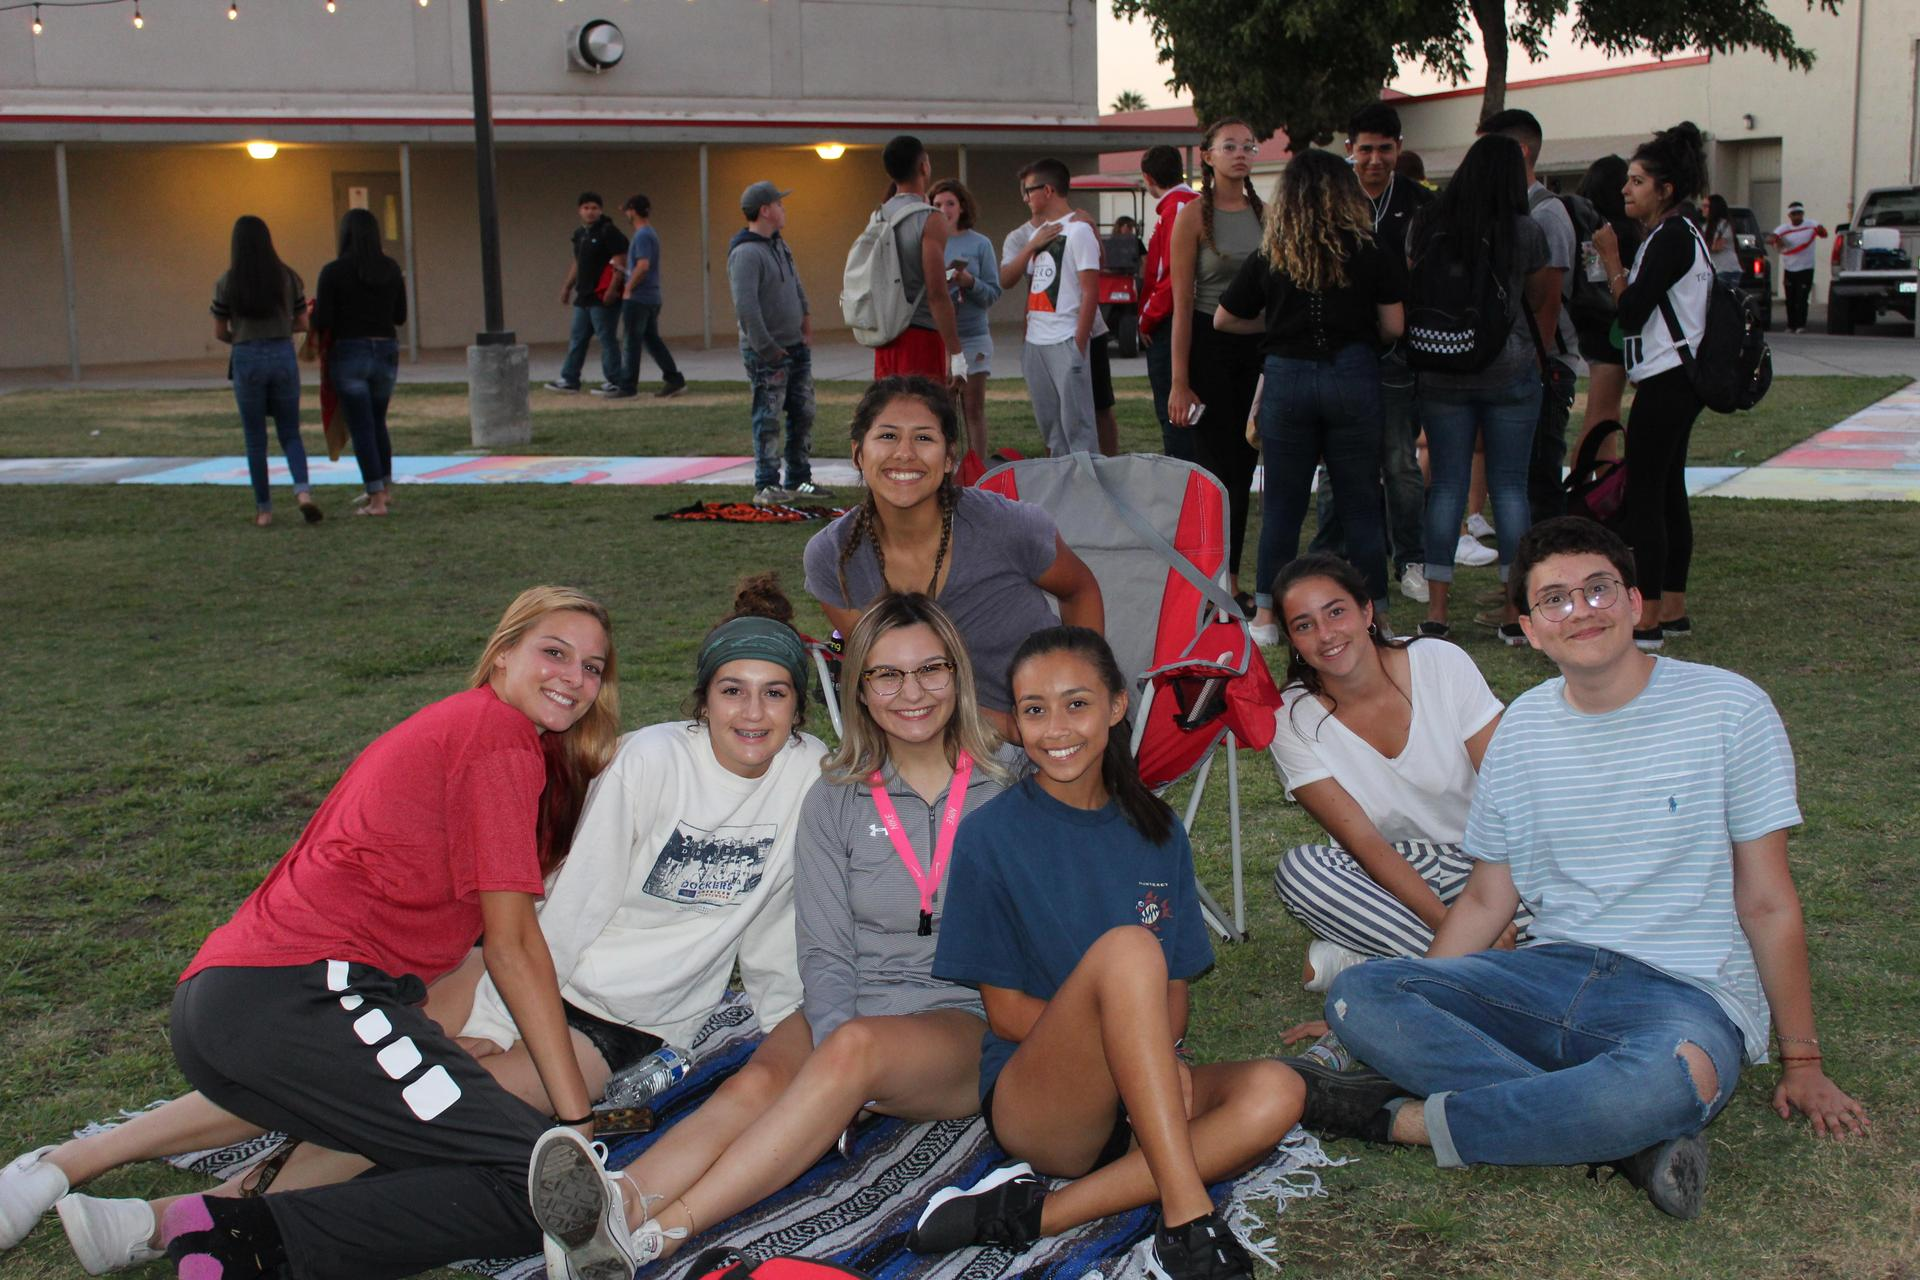 Students having fun at Mr. Tailgate